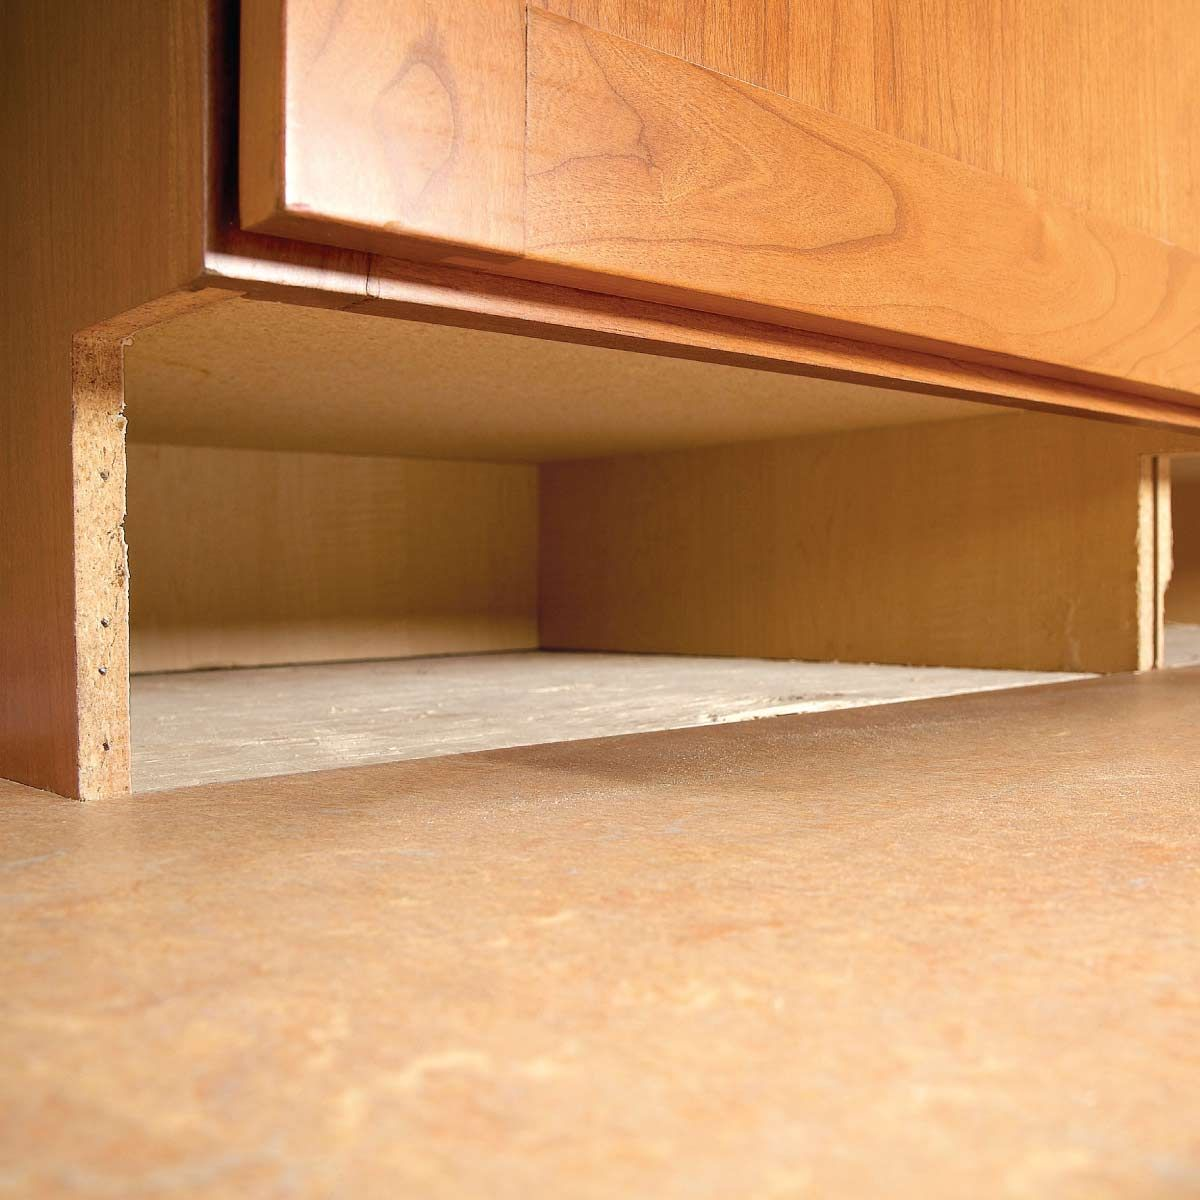 How To Build Under Cabinet Drawers Increase Kitchen Storage Under Cabinet Drawers Under Cabinet Storage Kitchen Cabinet Storage